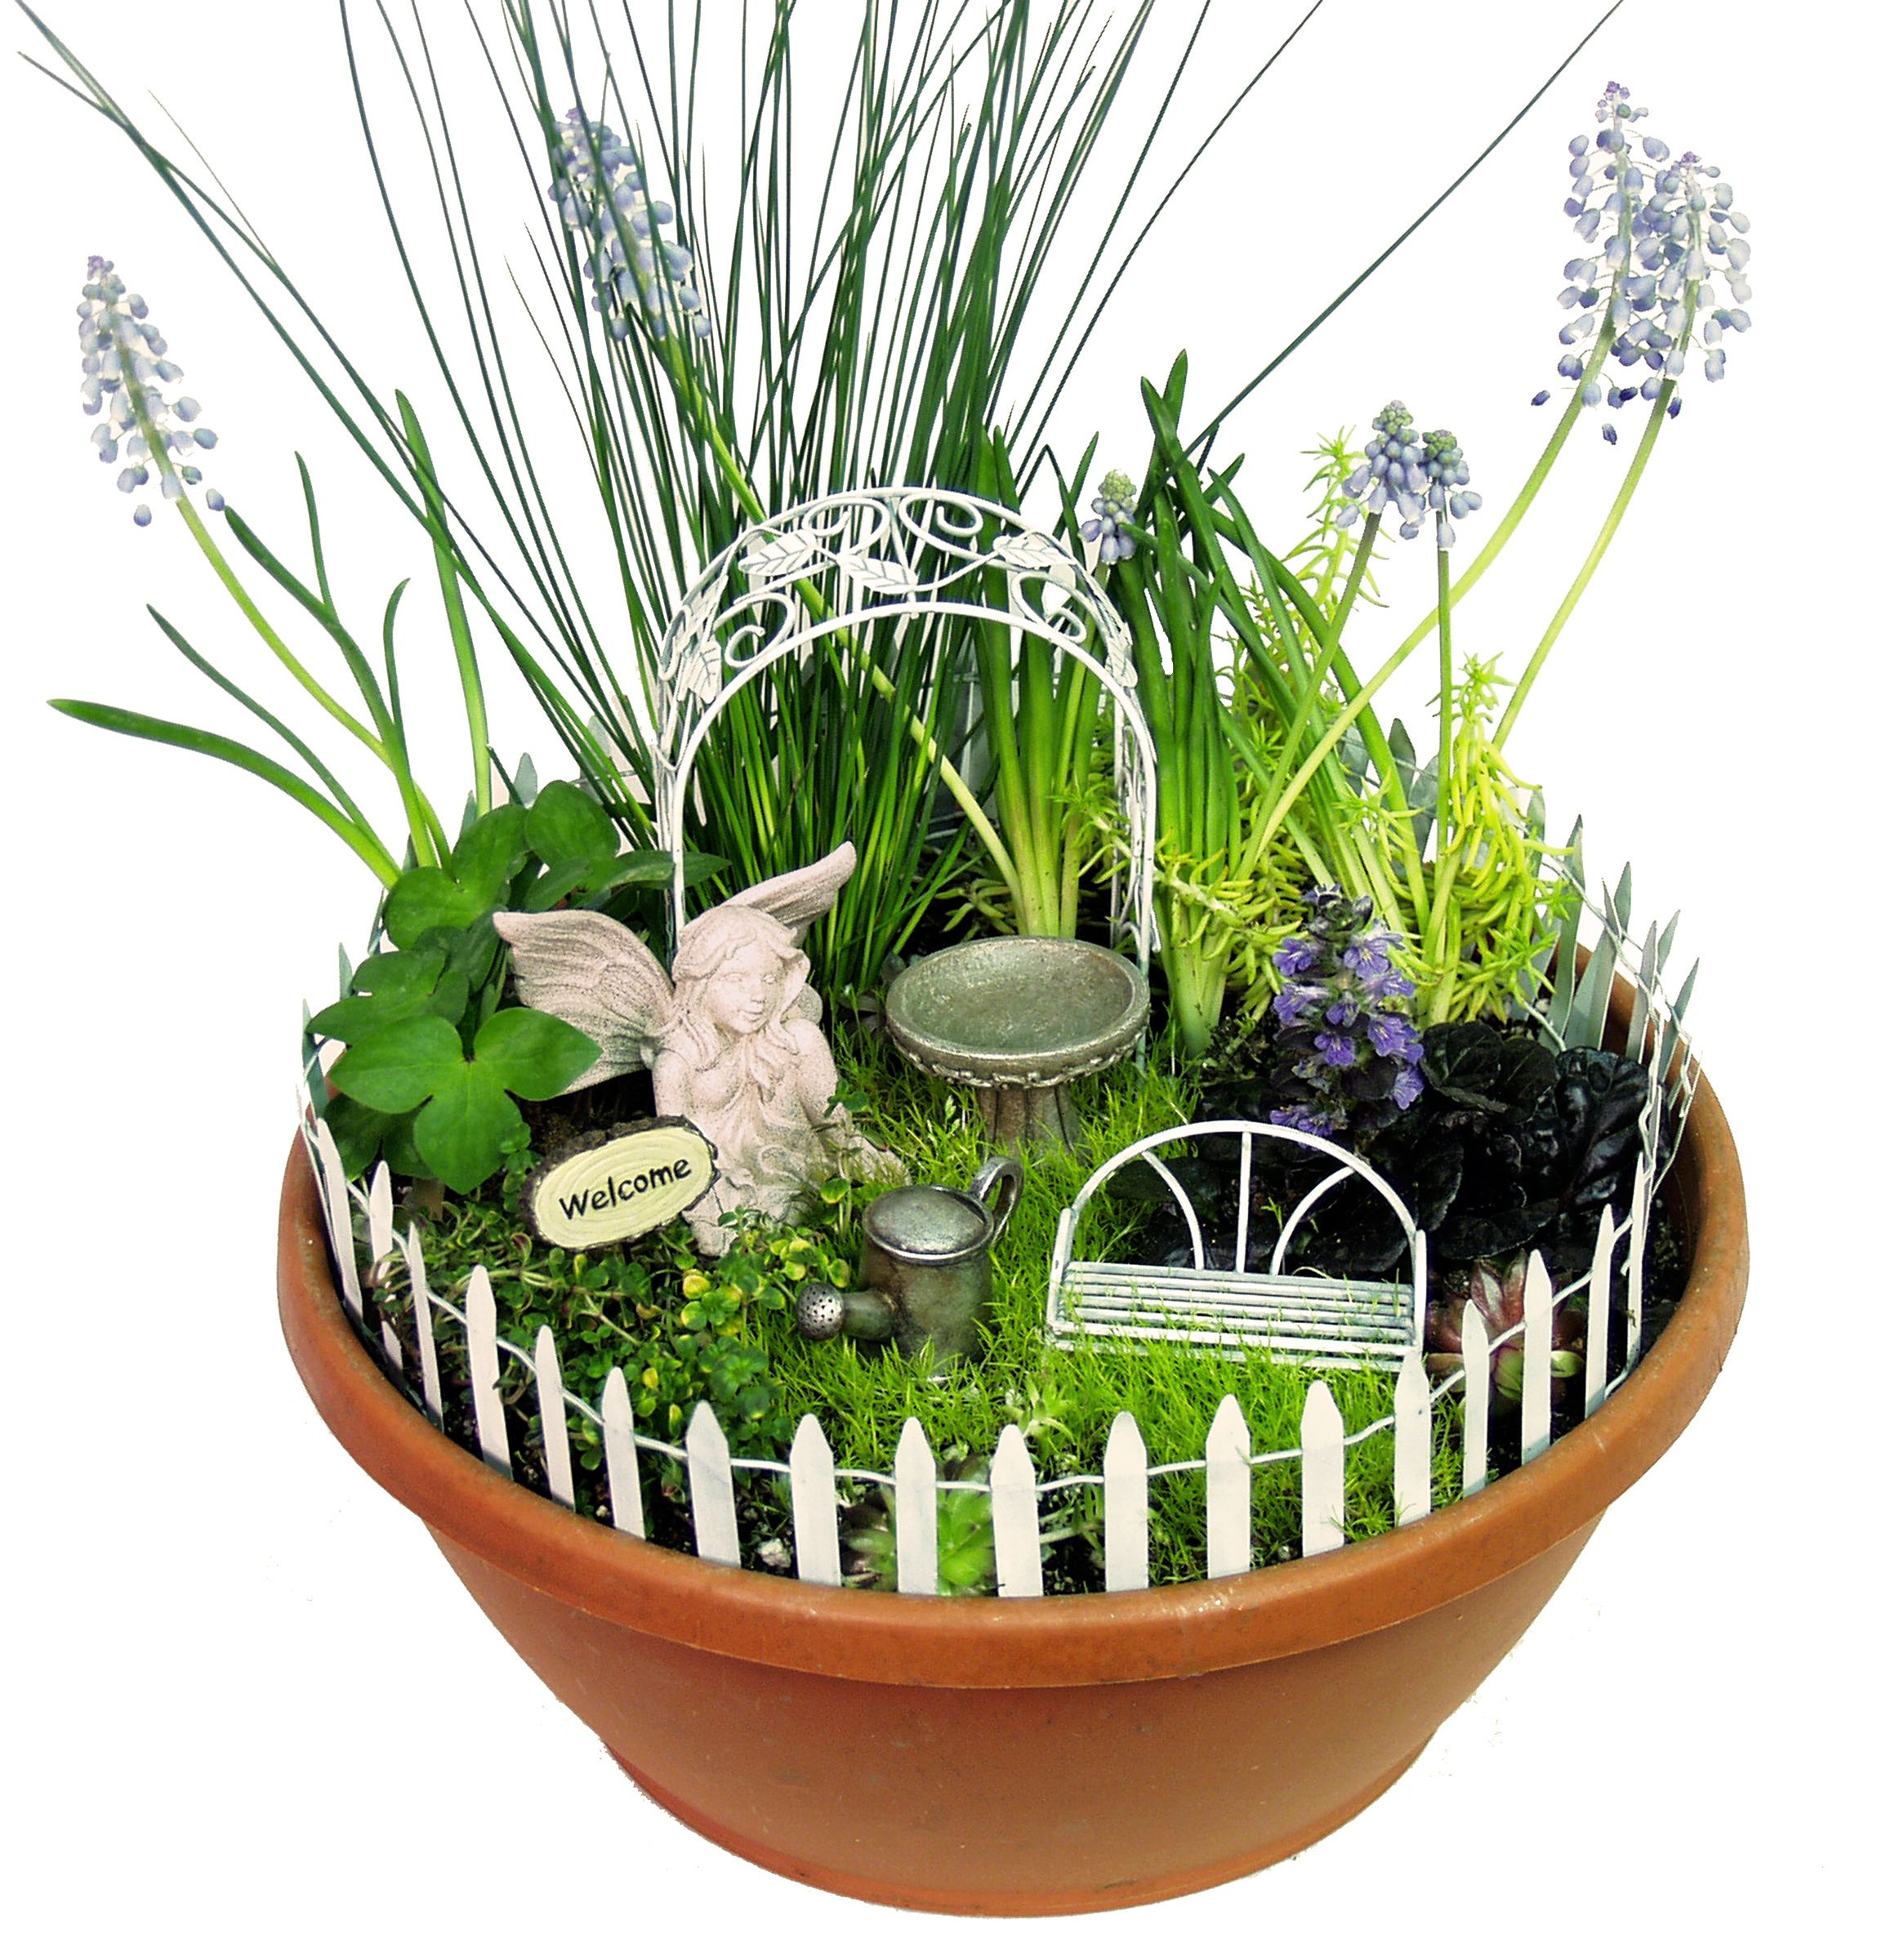 Top 25 ideas about FairyMini Garden Kits on Pinterest Fairy